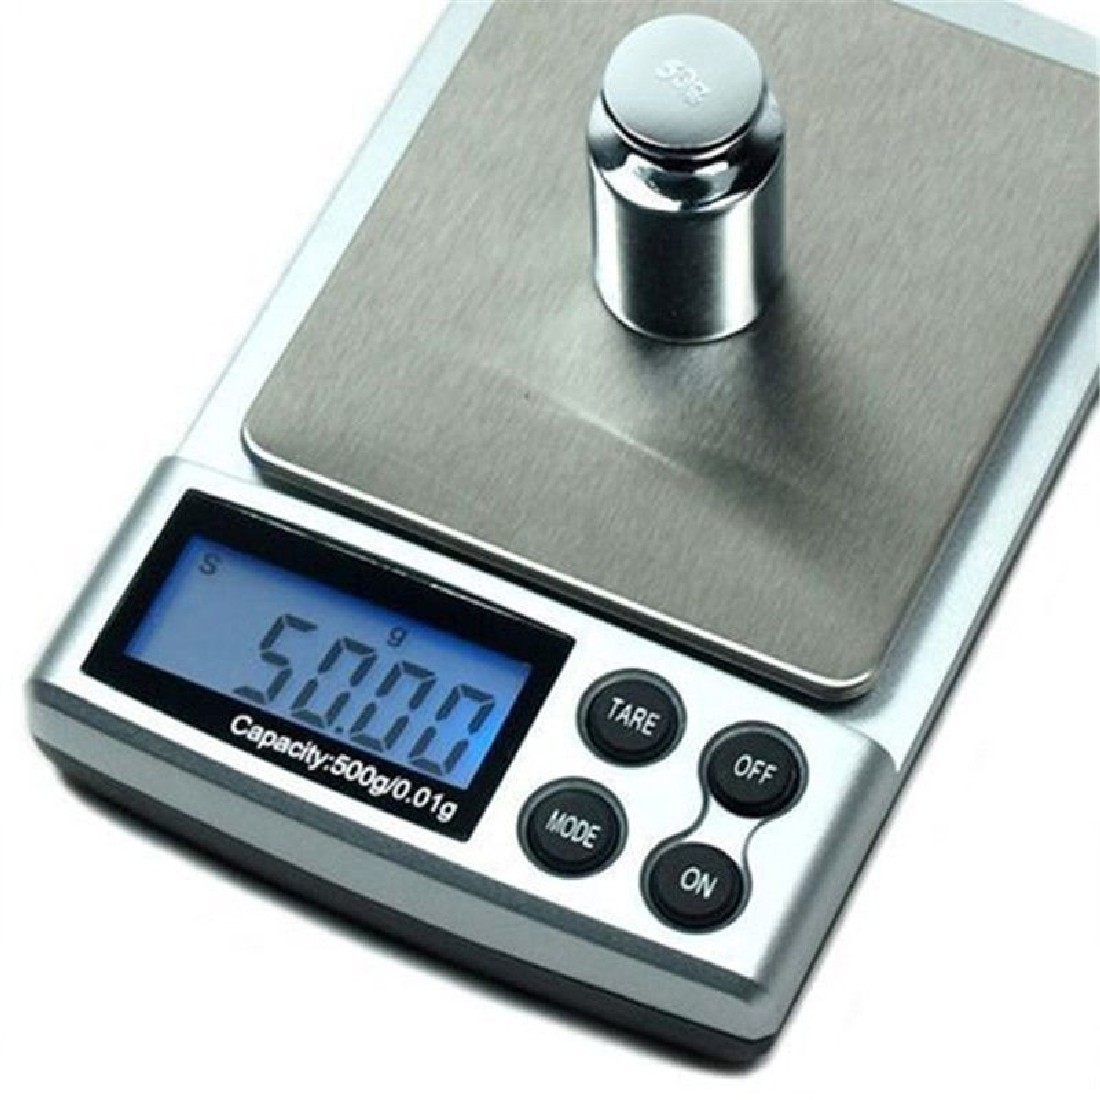 Mini Pocket Precision Digital Scales 2000g/0.1g Electronic Jewelry Scales Weighing Kitchen Food Scales Balance LCD Display